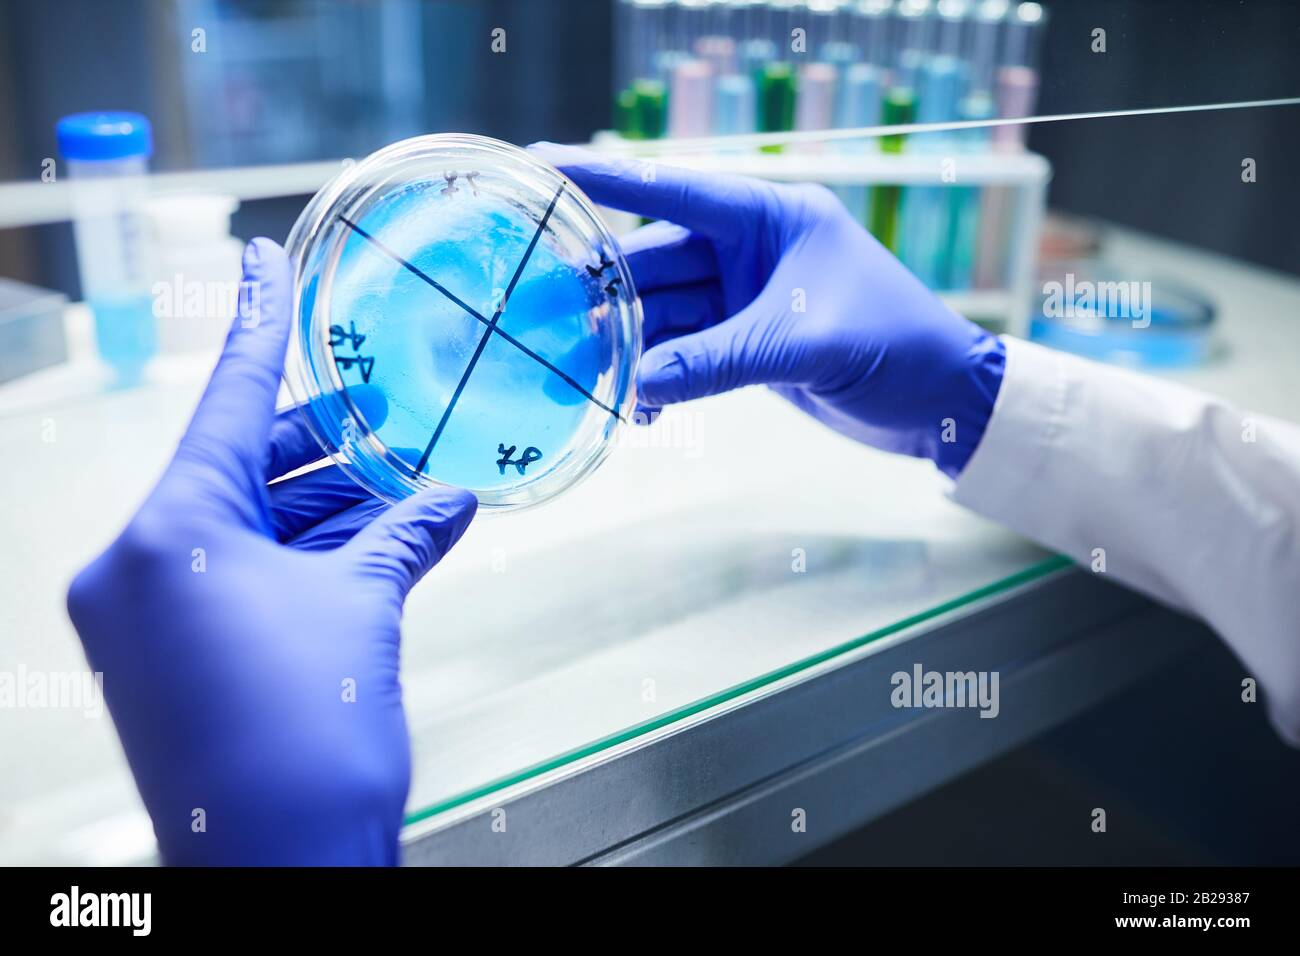 Close up of scientist with gloved hands holding petri dish while working on bio research in laboratory, copy space Stock Photo